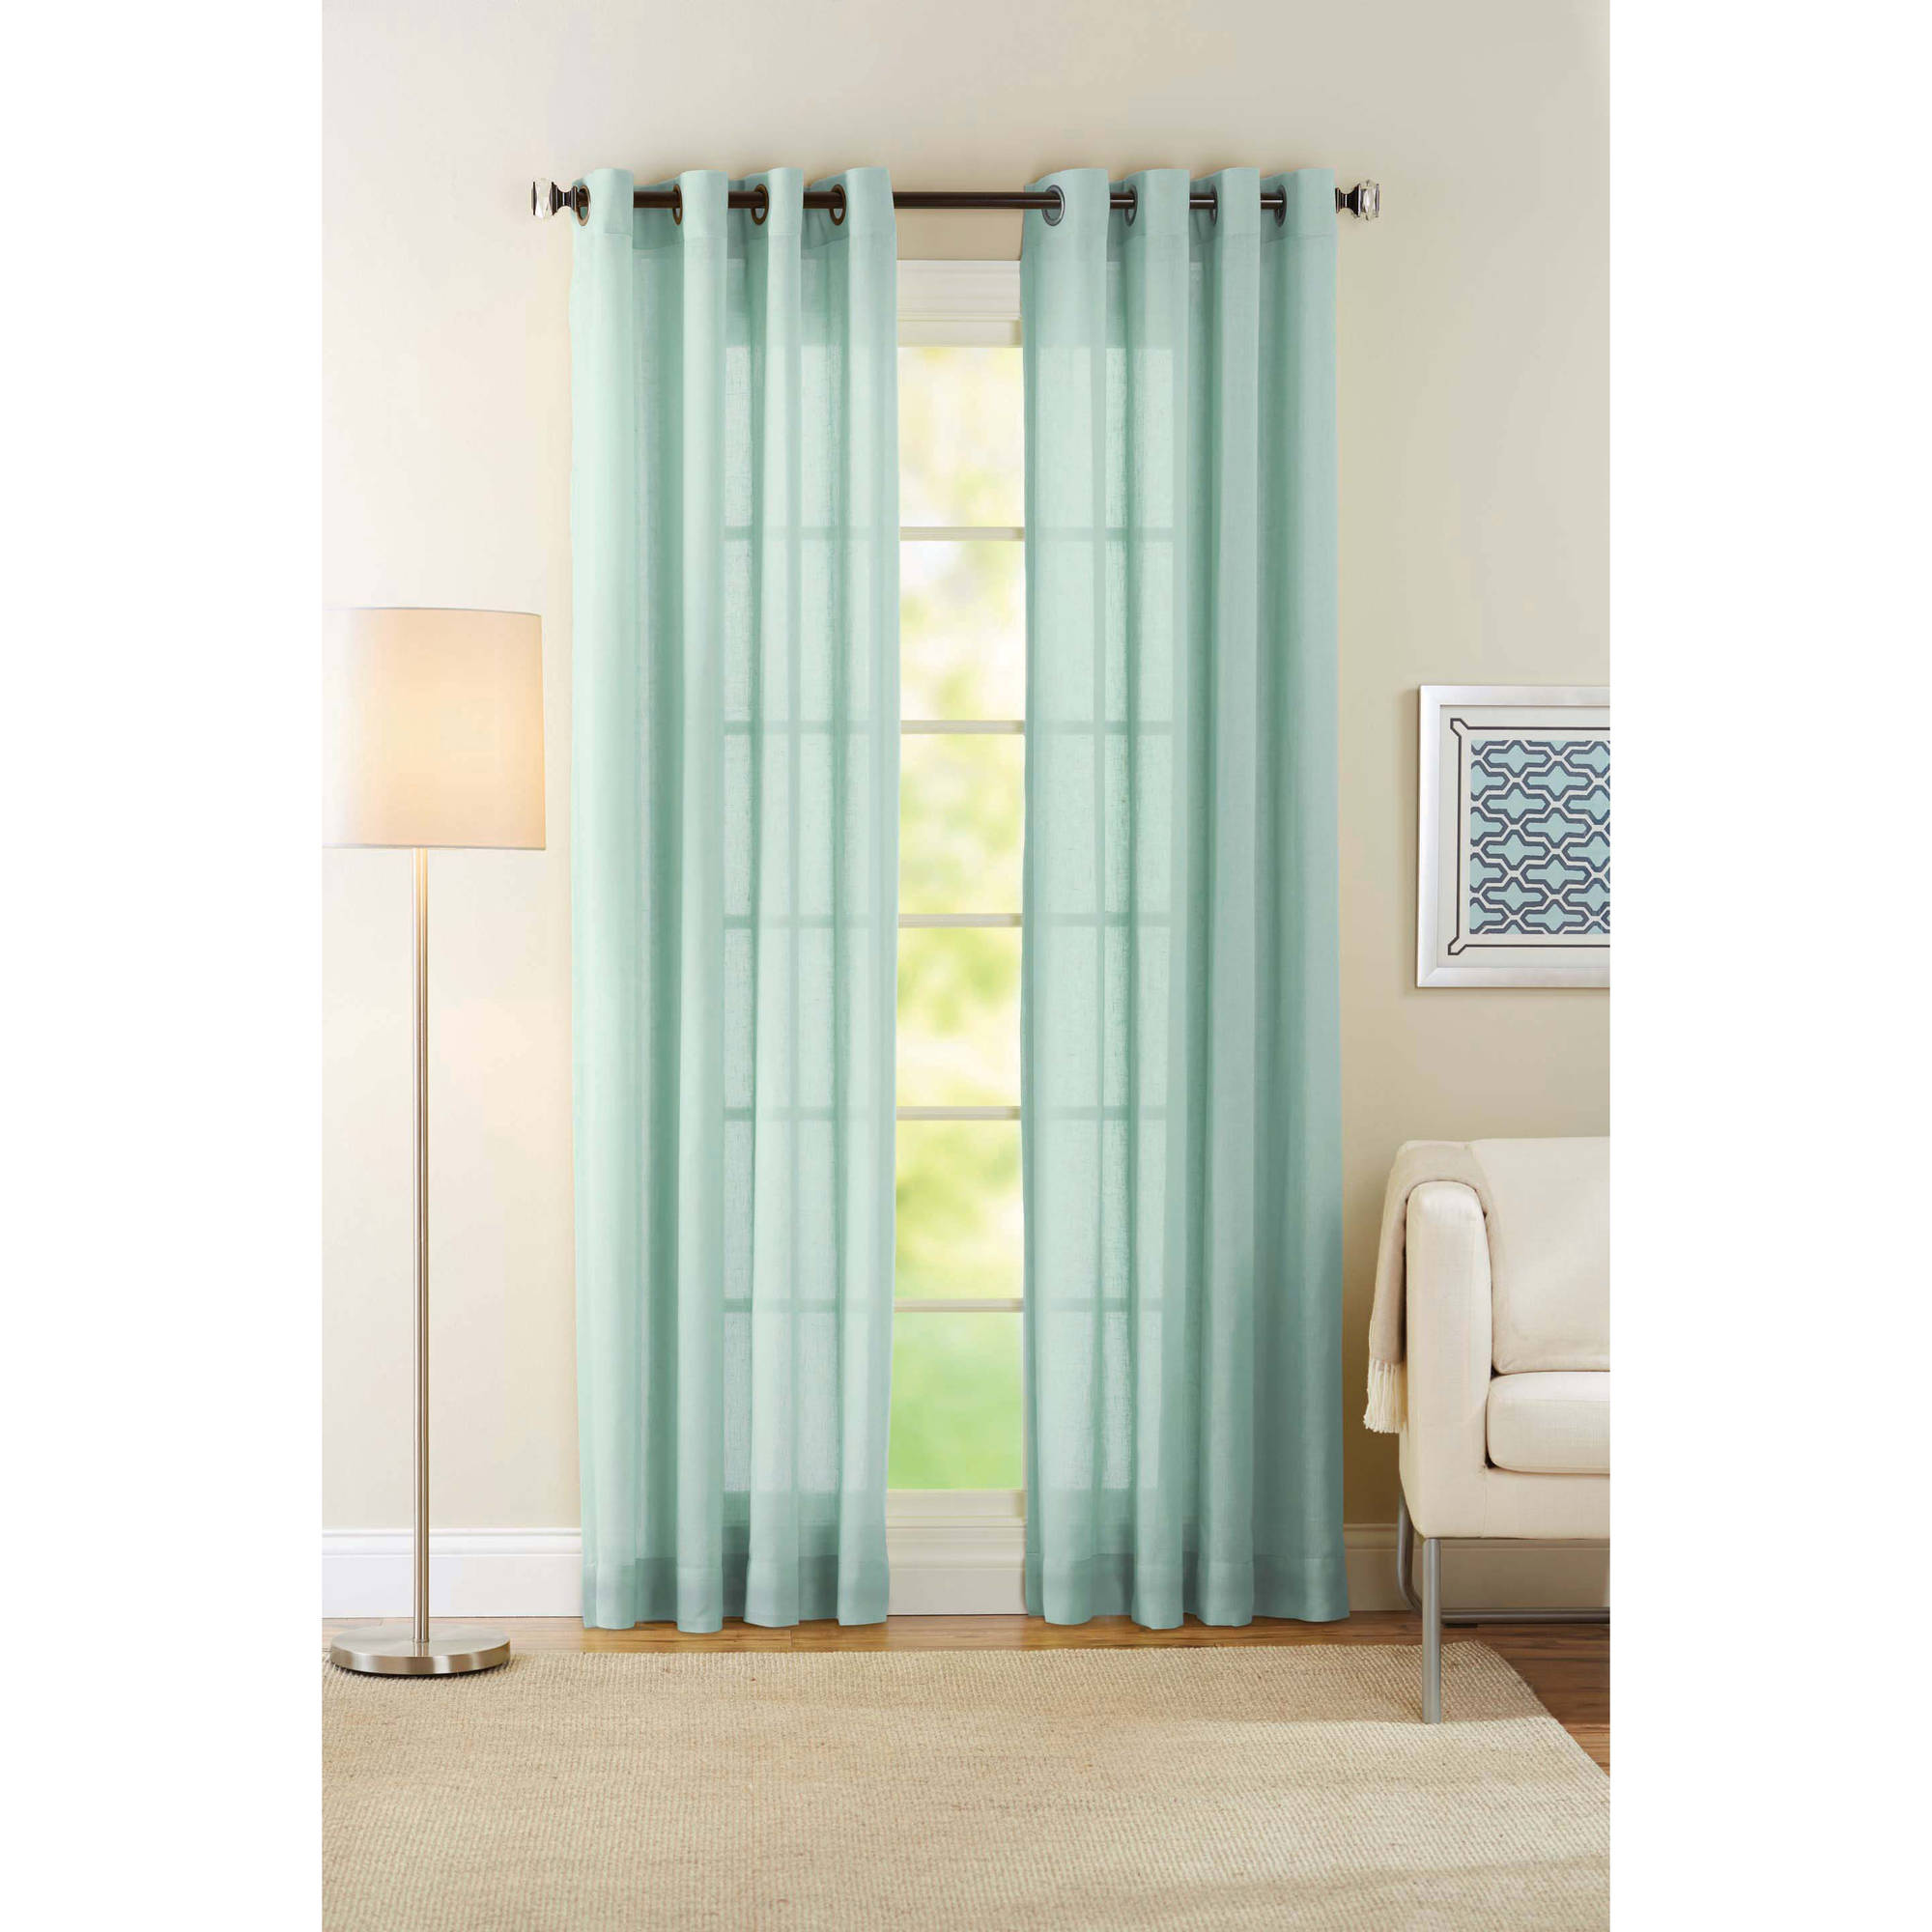 Sheer curtains- perfect for any window - darbylanefurniture.com